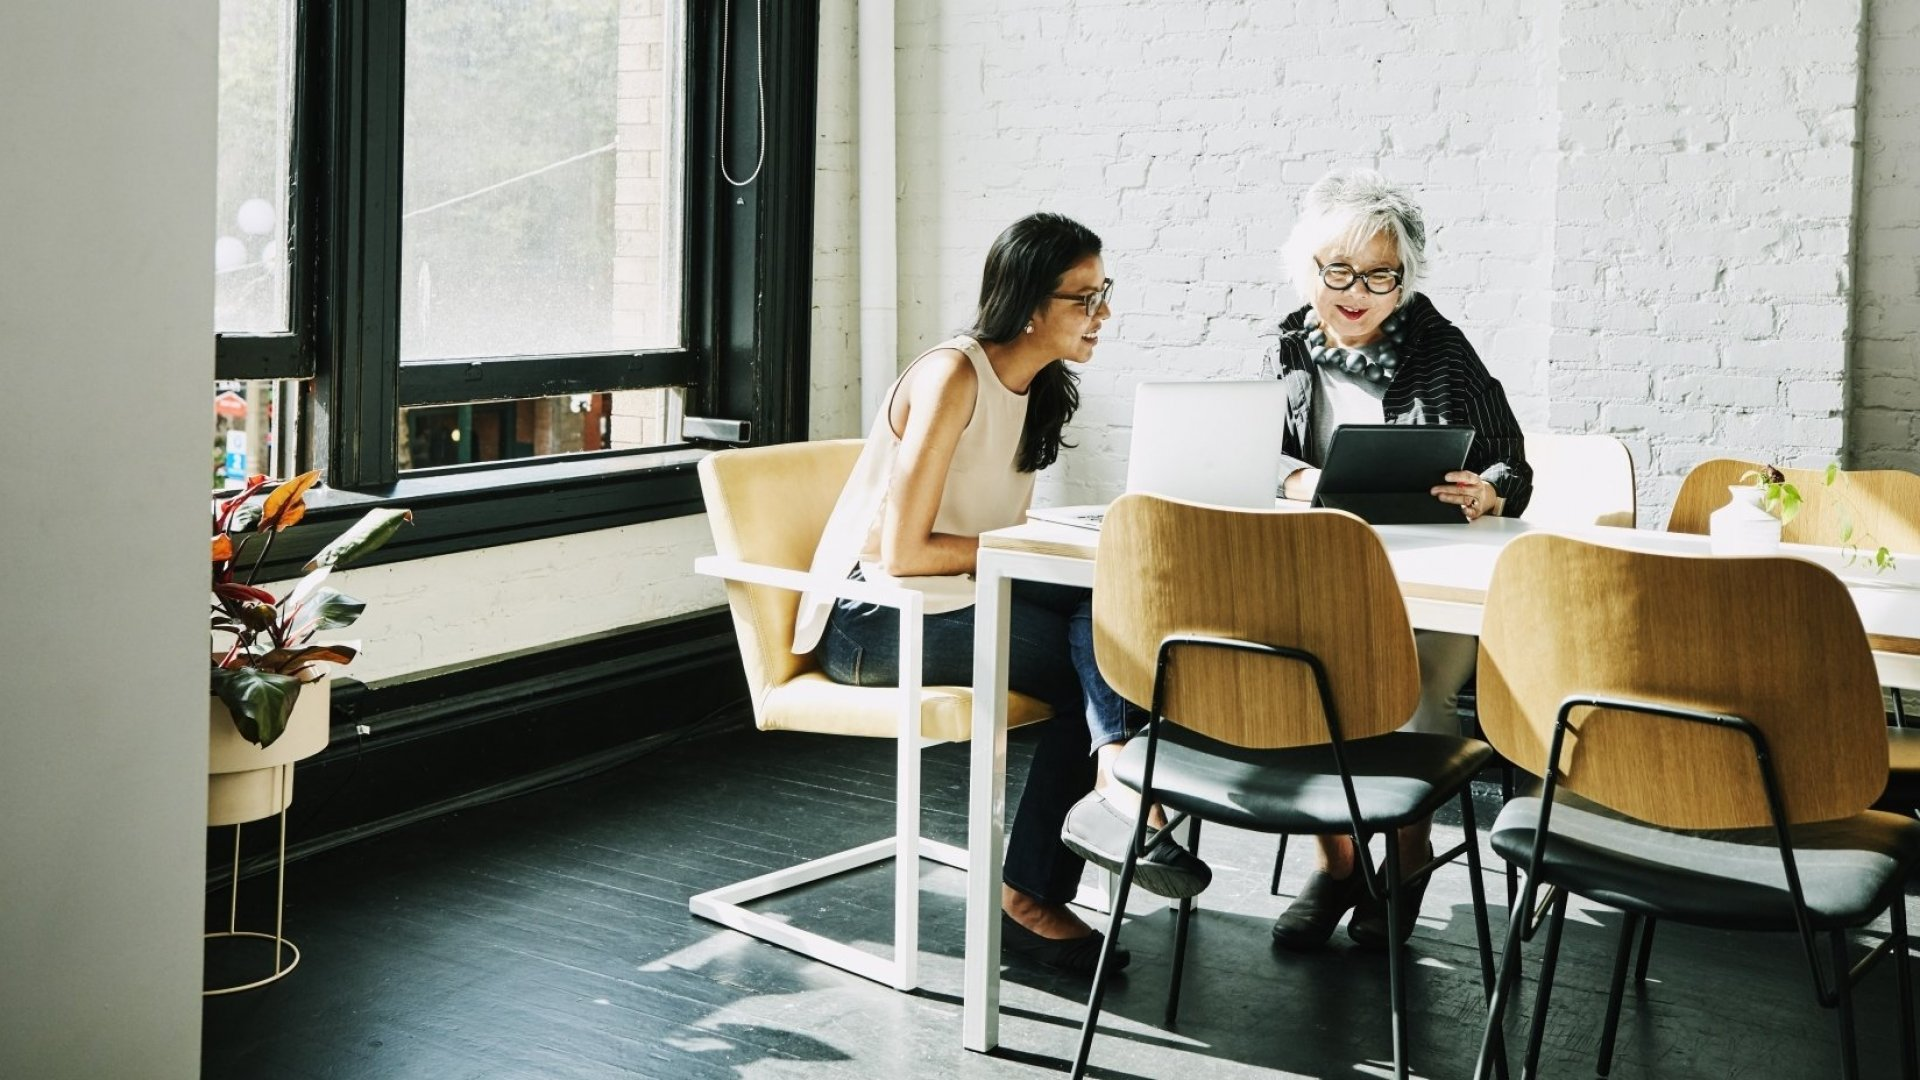 How to Lead Multi-Generational Teams During the 'OK Boomer' Divide